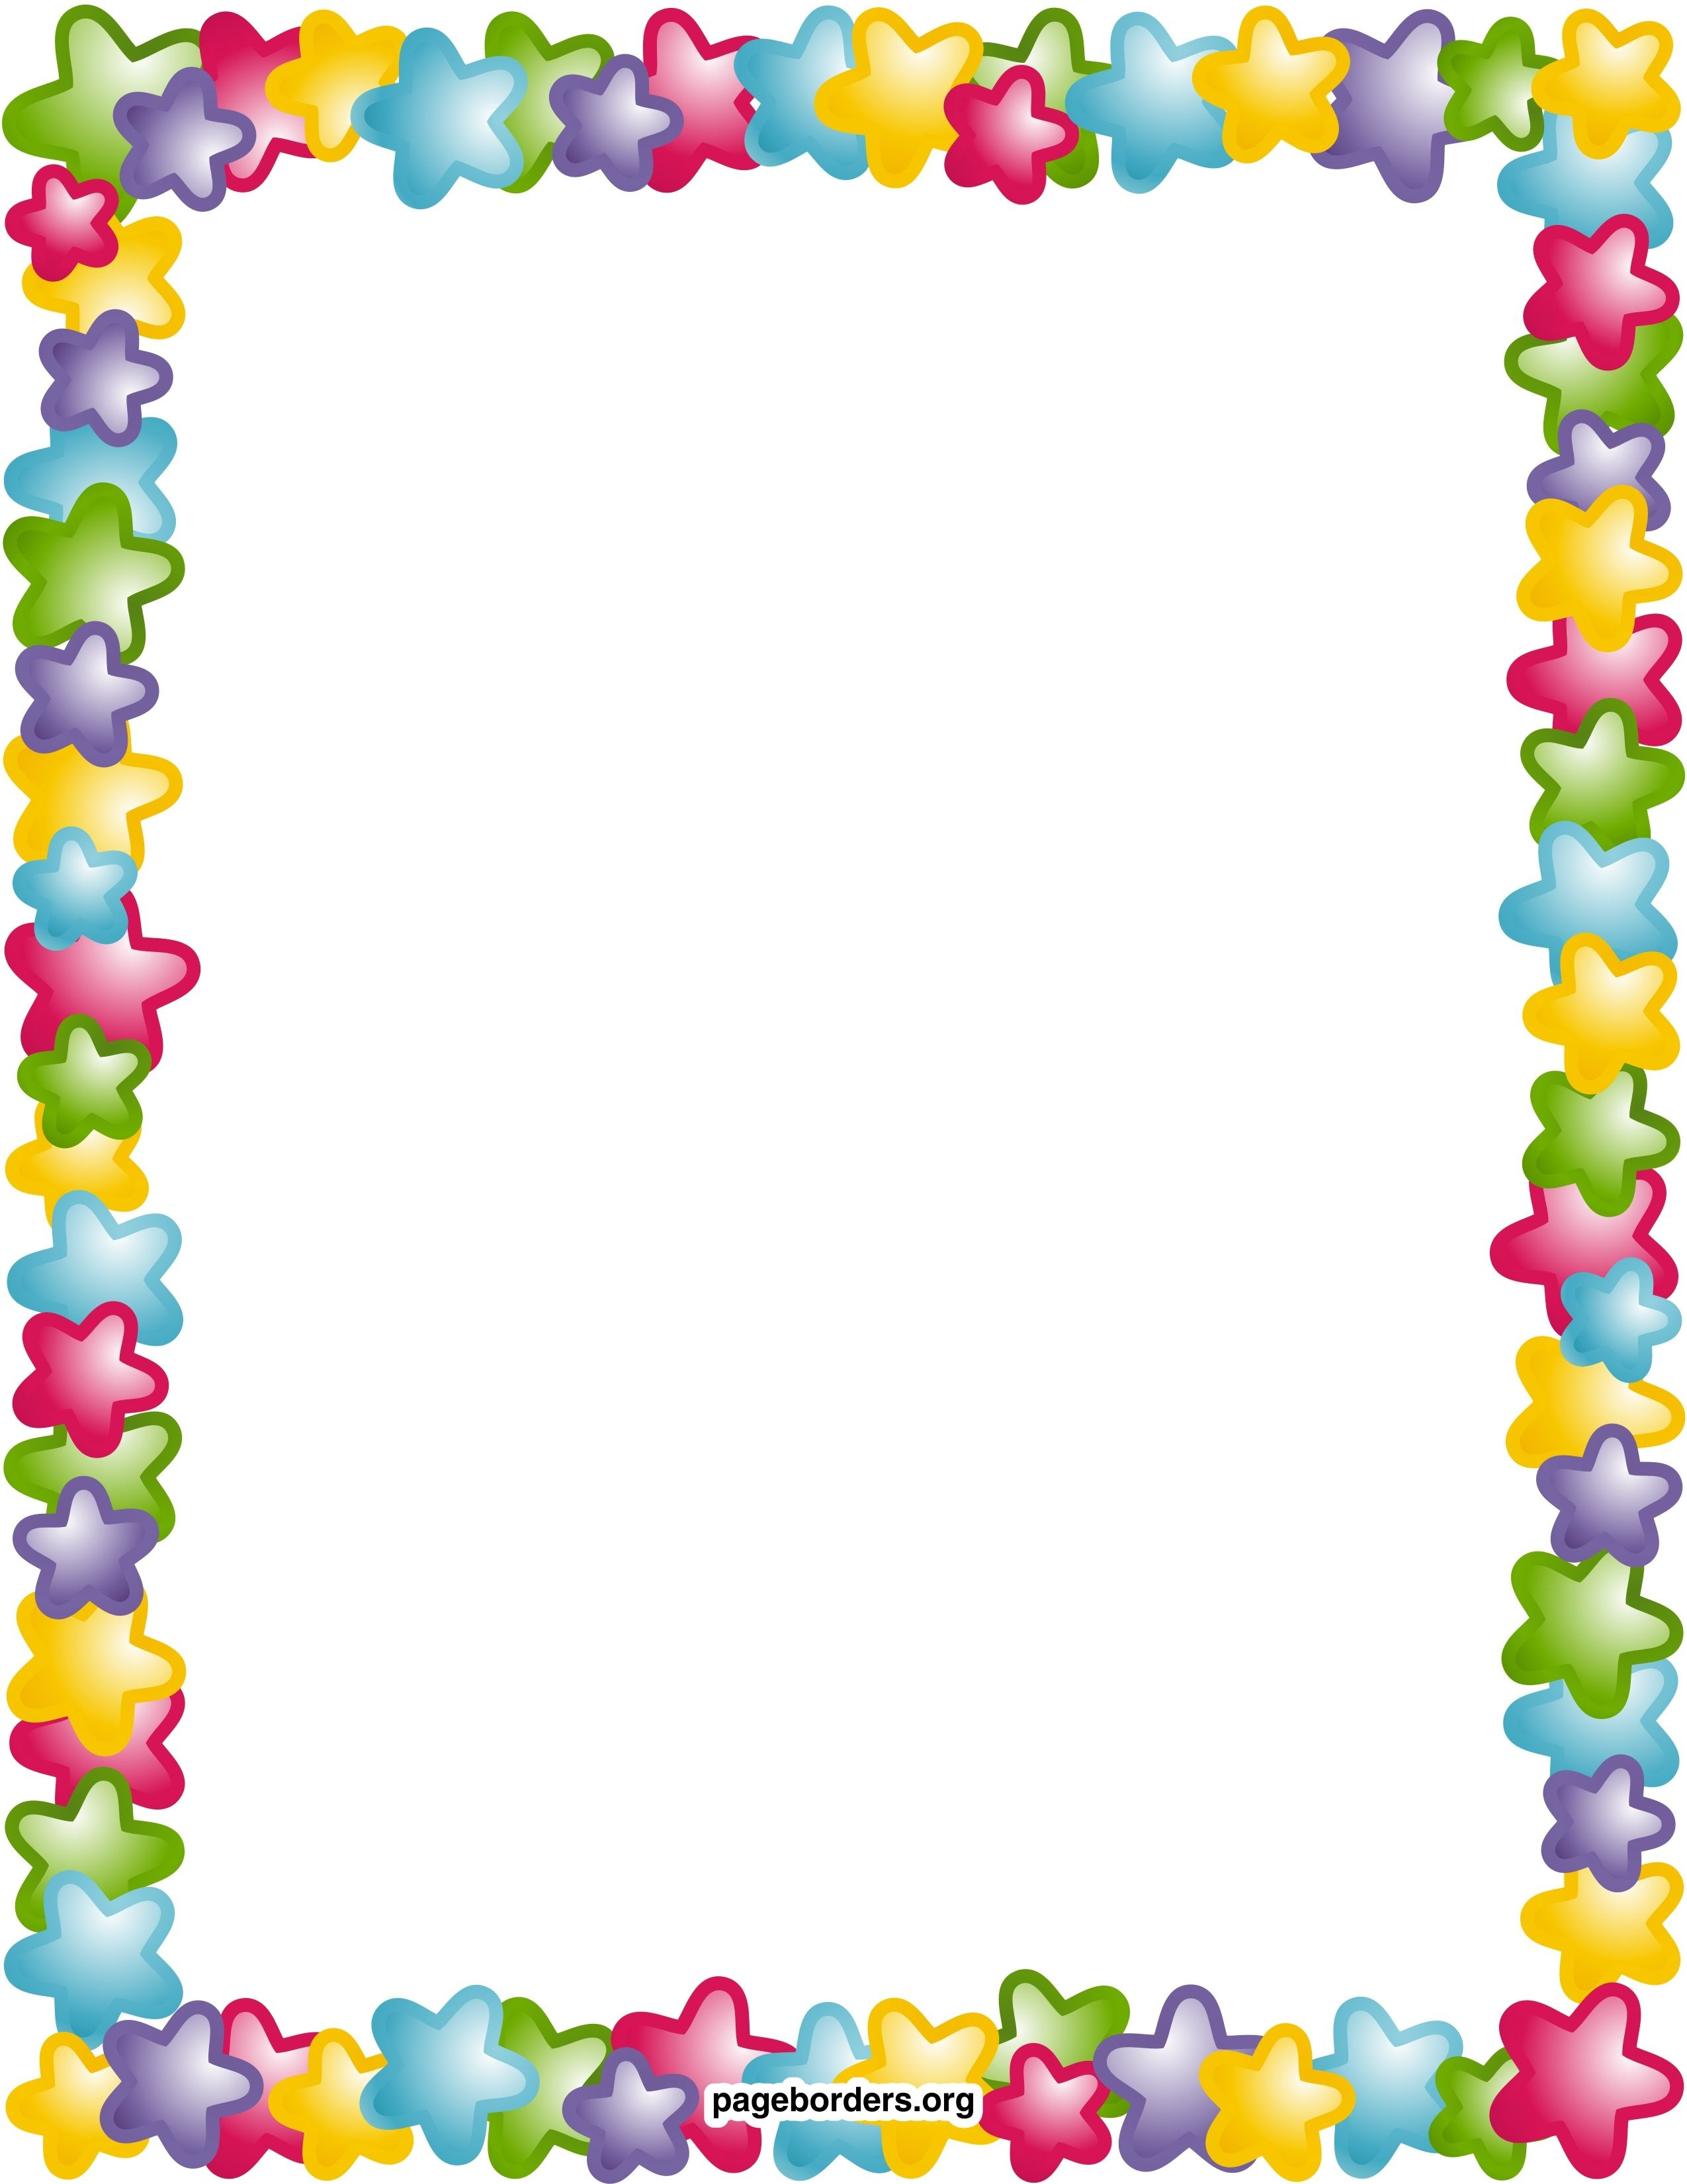 Star Border Clip Art Clipart Panda Free Clipart Images | Printable - Free Printable Page Borders